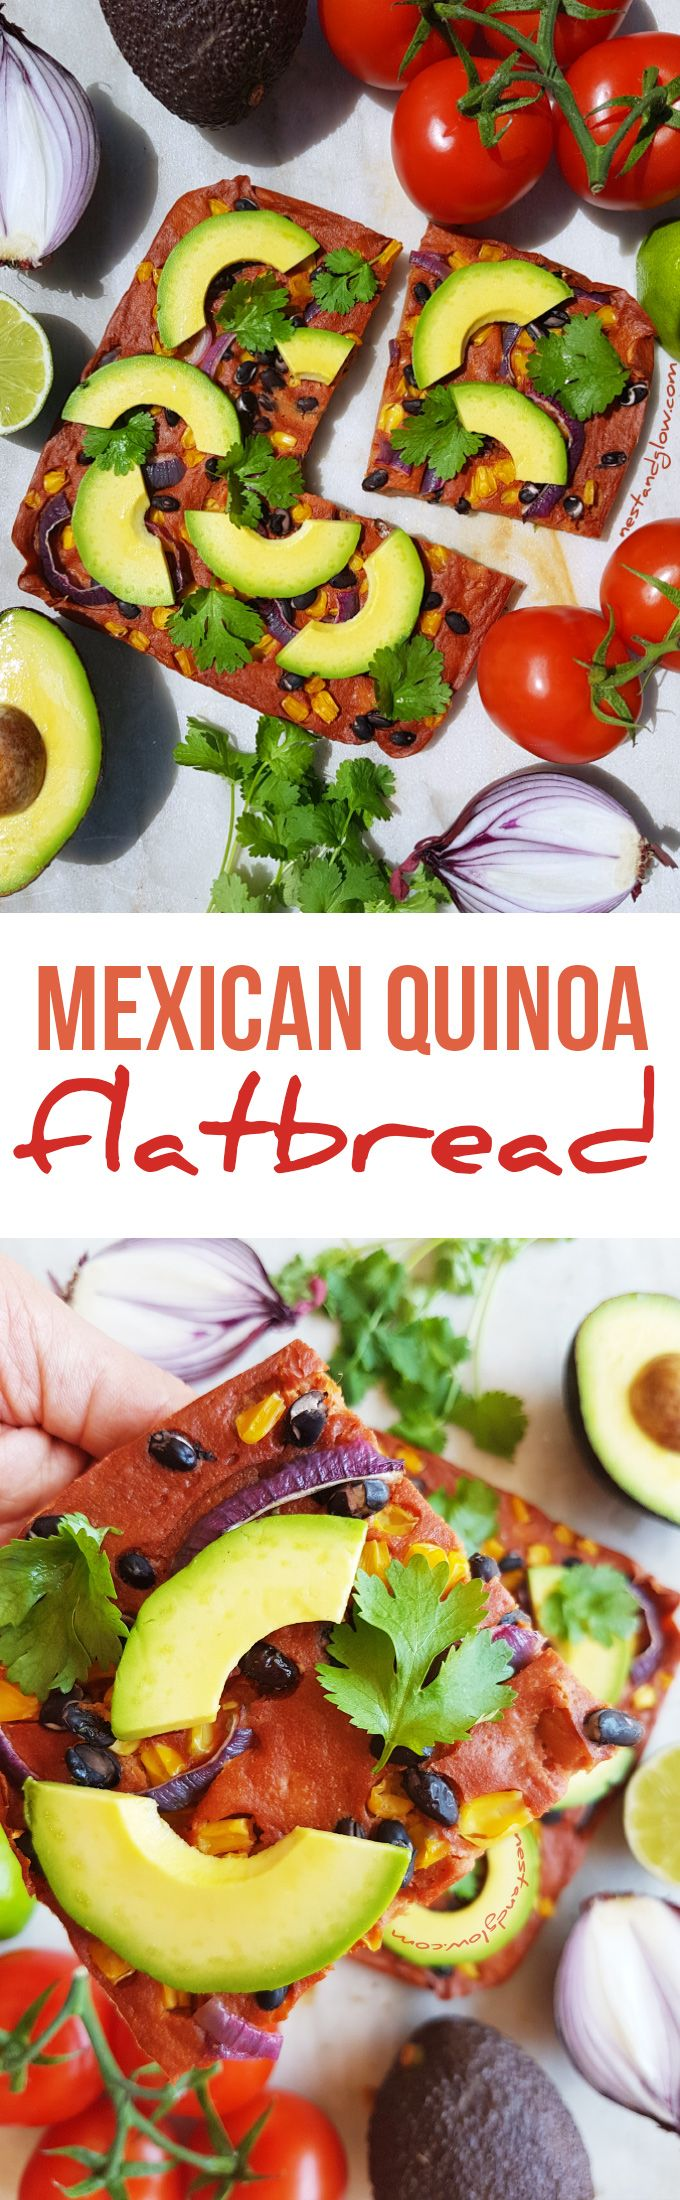 Mexican Quinoa Flatbread Avocado Recipe - Gluten-free and easy via @nestandglow